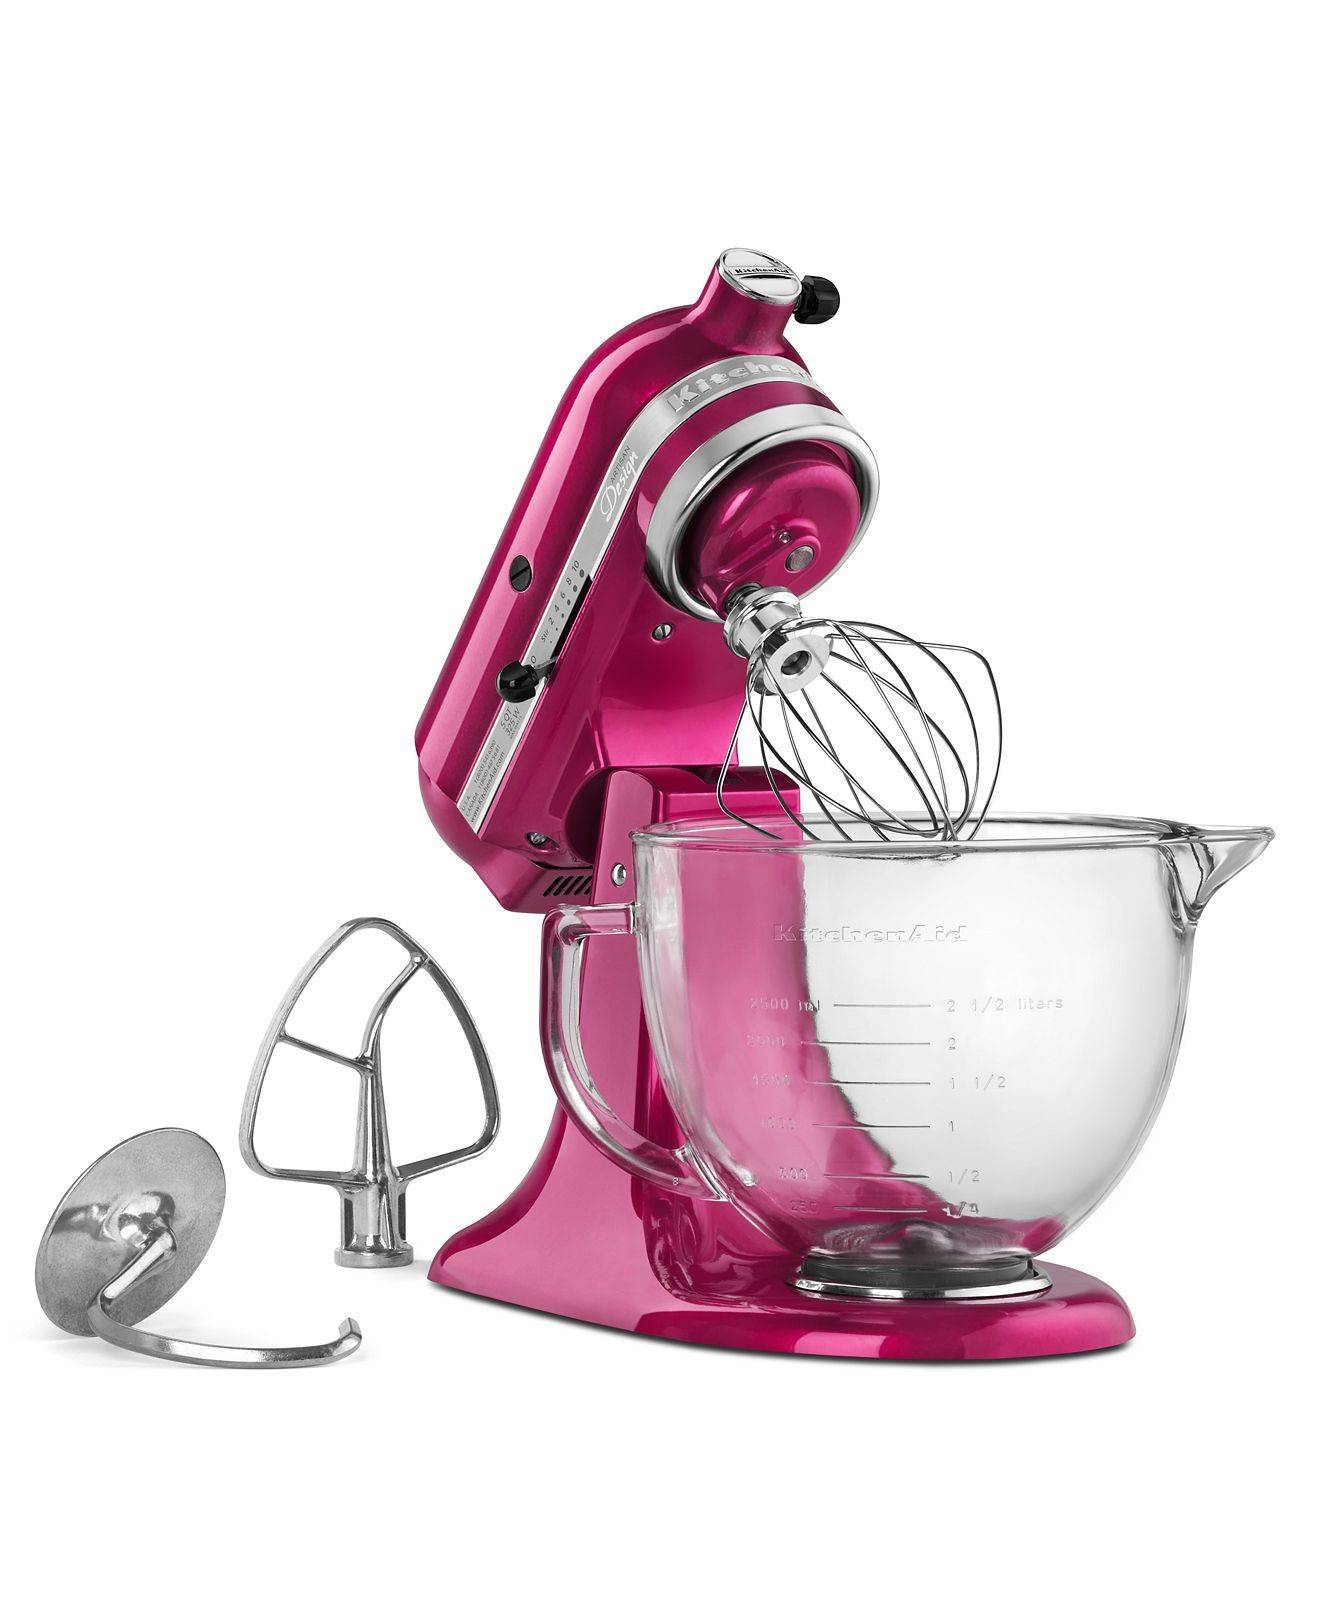 I cant wait to get one of these bad boys kitchen aid